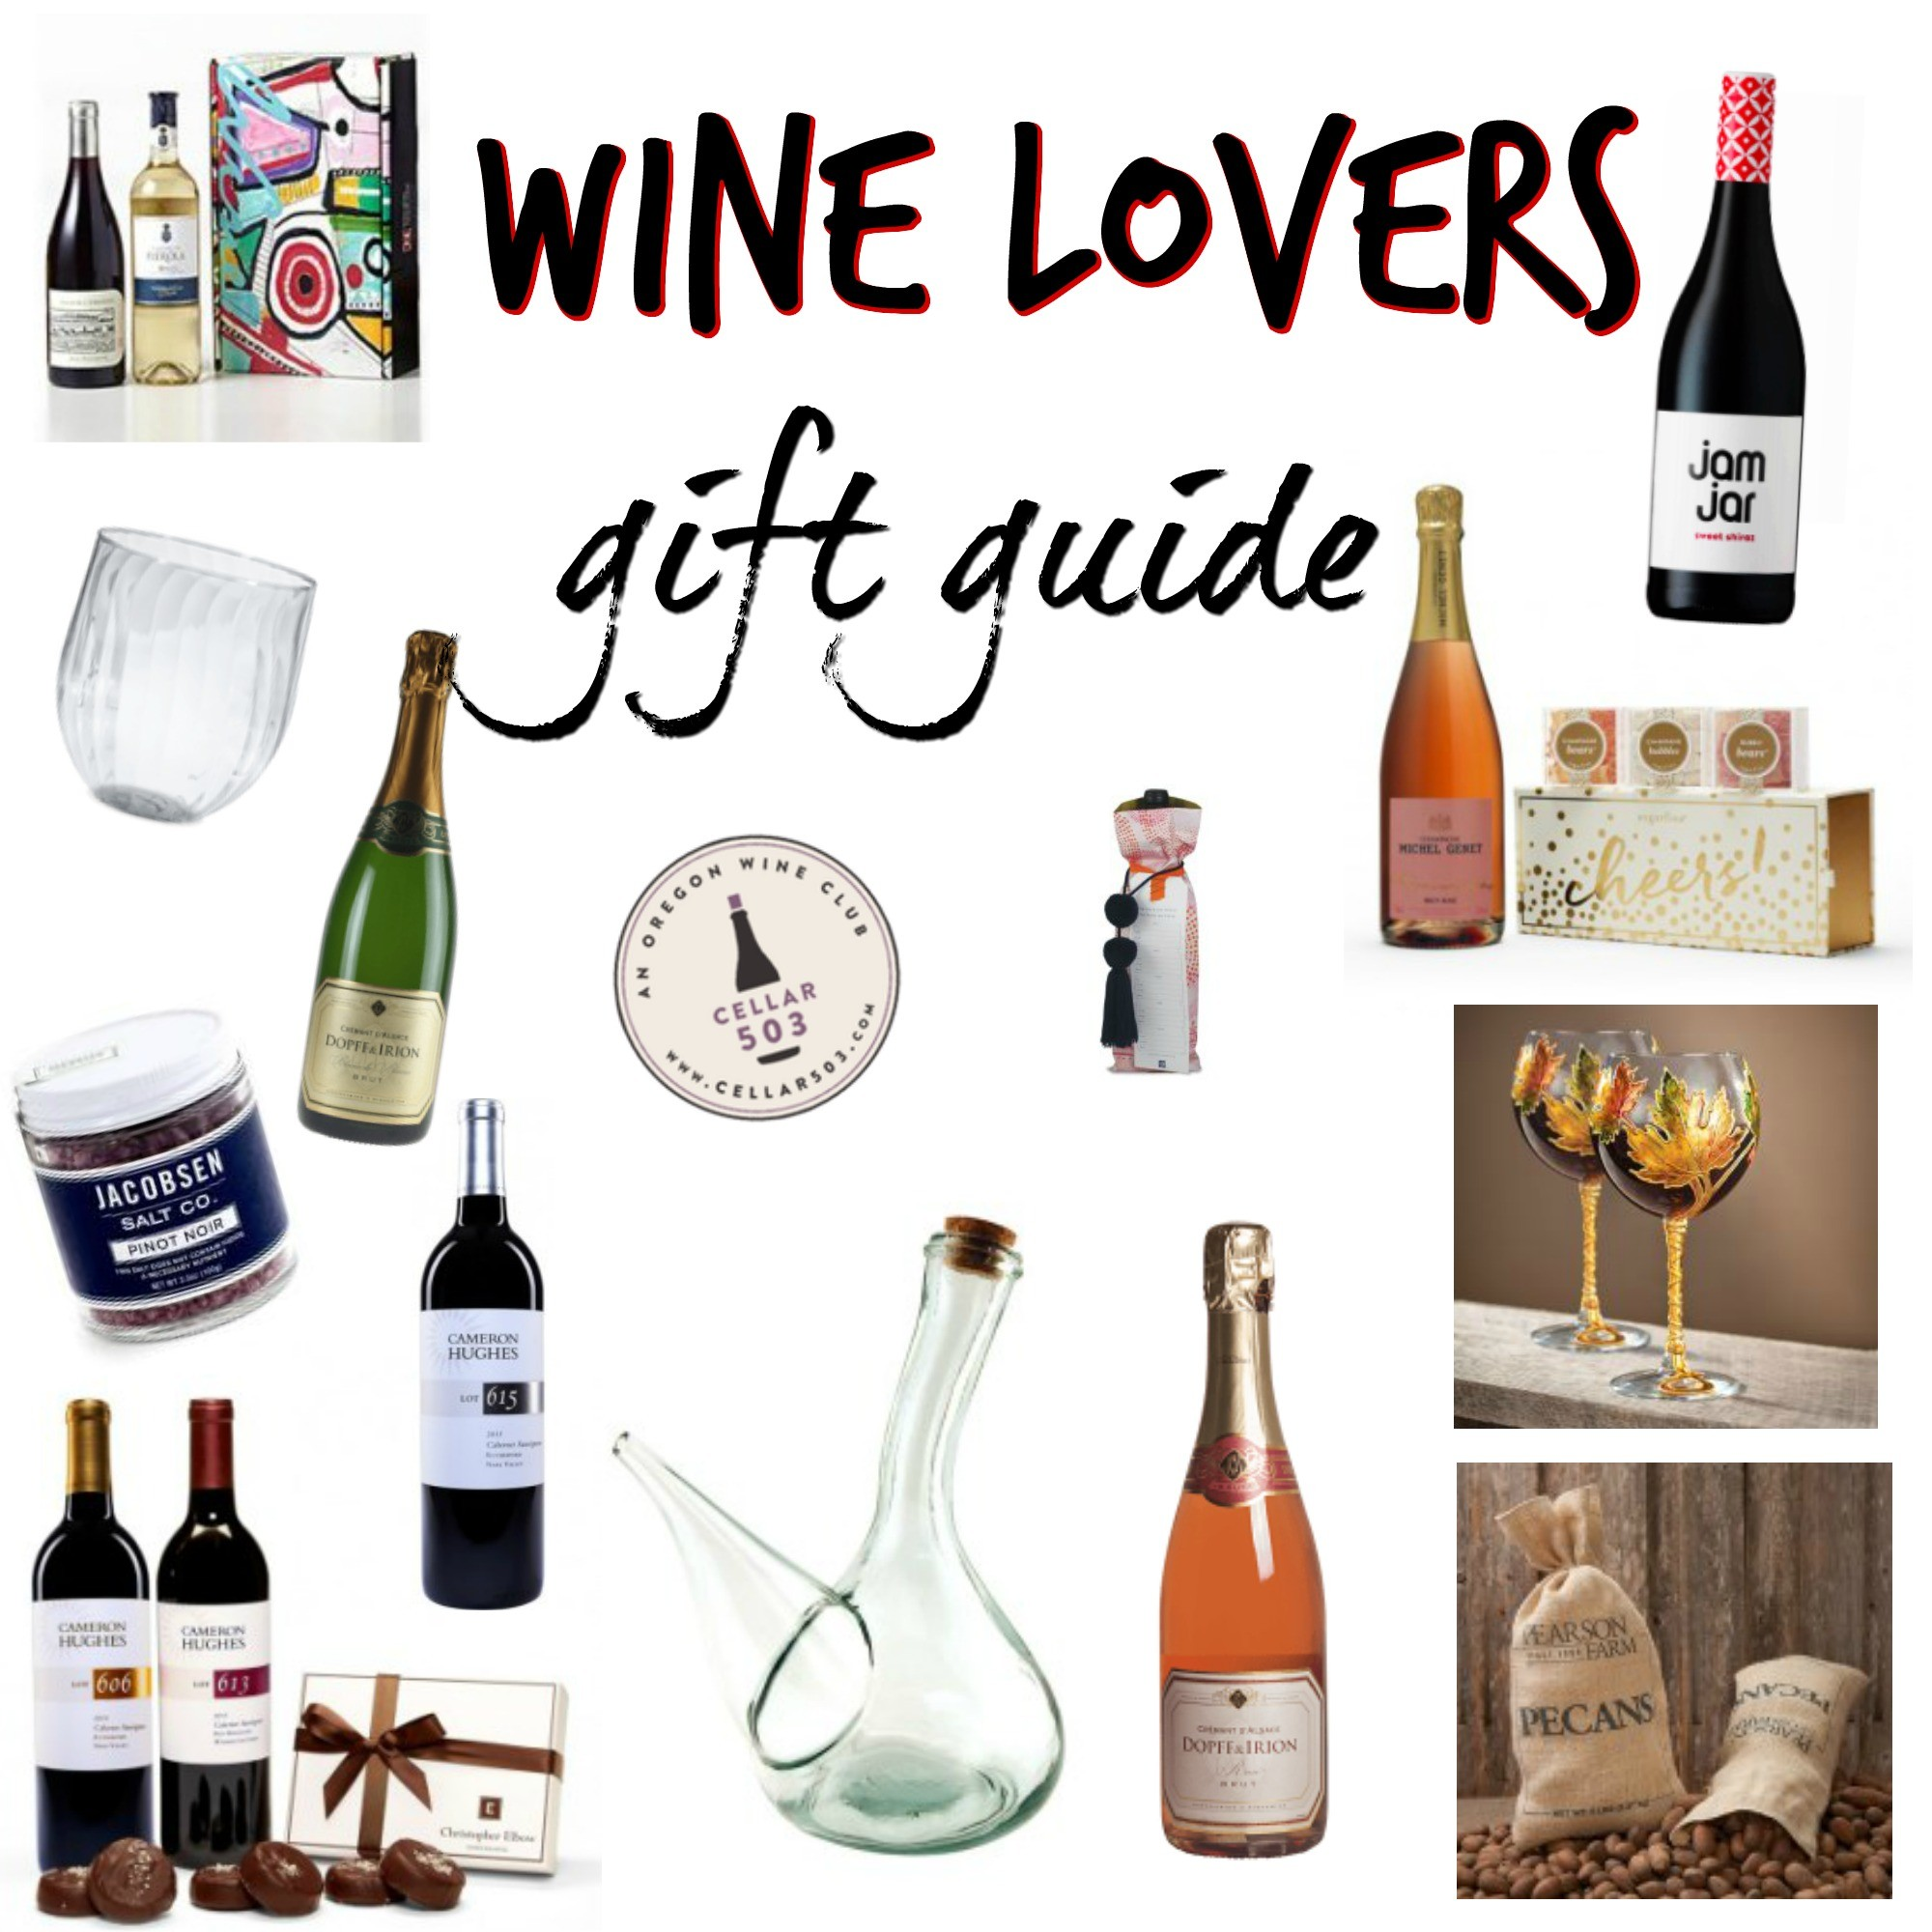 225 & Best Gift Ideas for the Wine Lovers In Your Life - Sarah Scoop